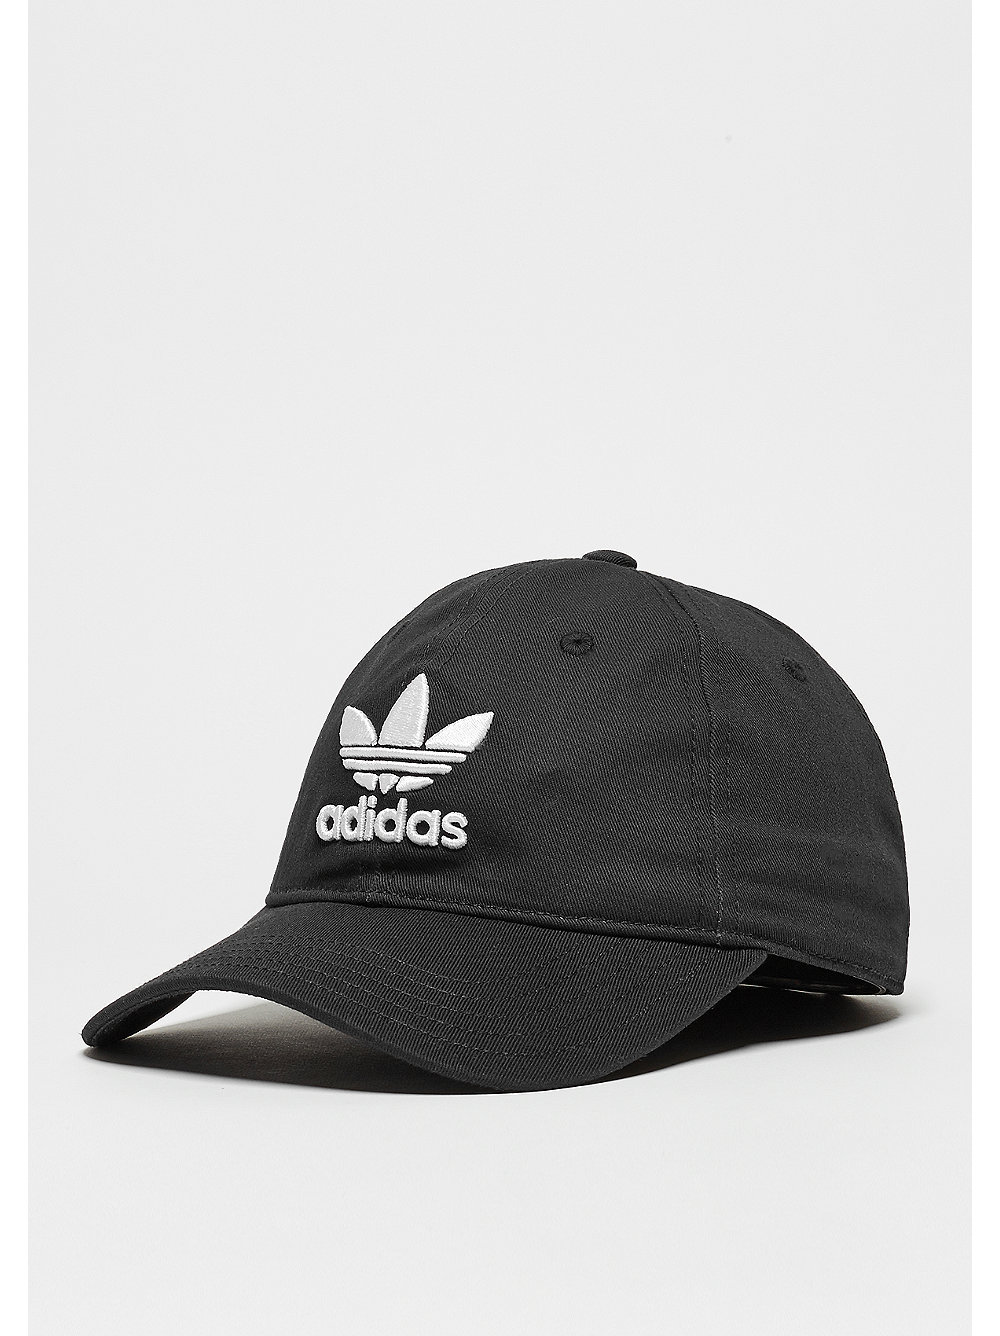 adidas baseball cap trefoil black bei snipes bestellen. Black Bedroom Furniture Sets. Home Design Ideas